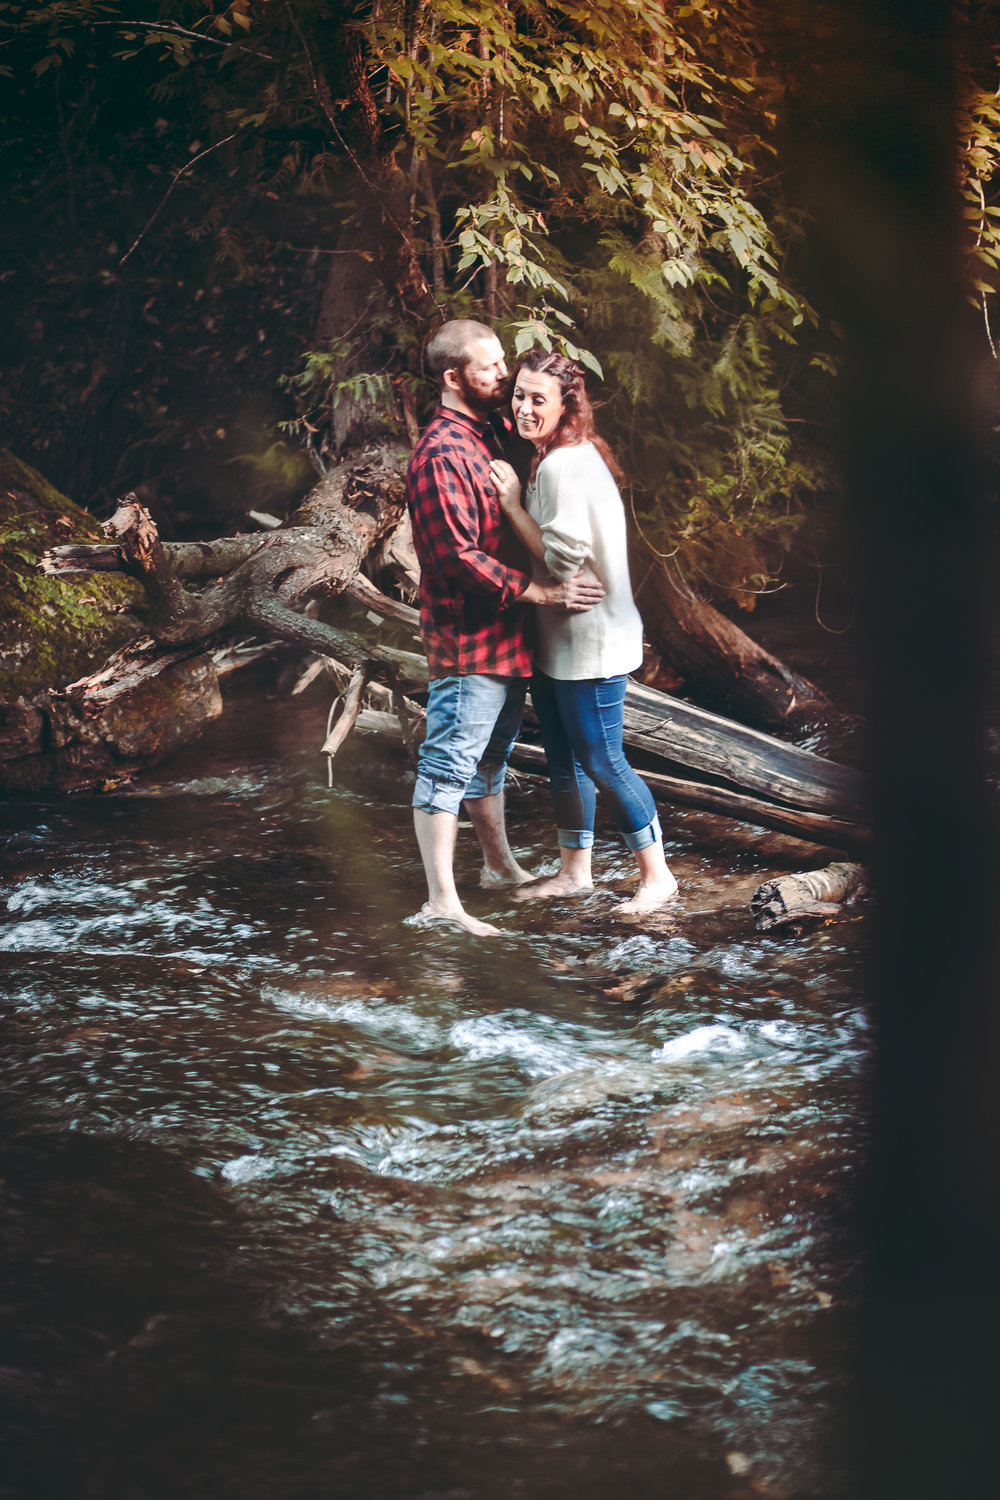 Amy D Photography- Barrie Wedding Photography- Engagement Session- Fall Engagement- Engagement Poses- Barrie Weddings- Wedding Photographer-86.jpg